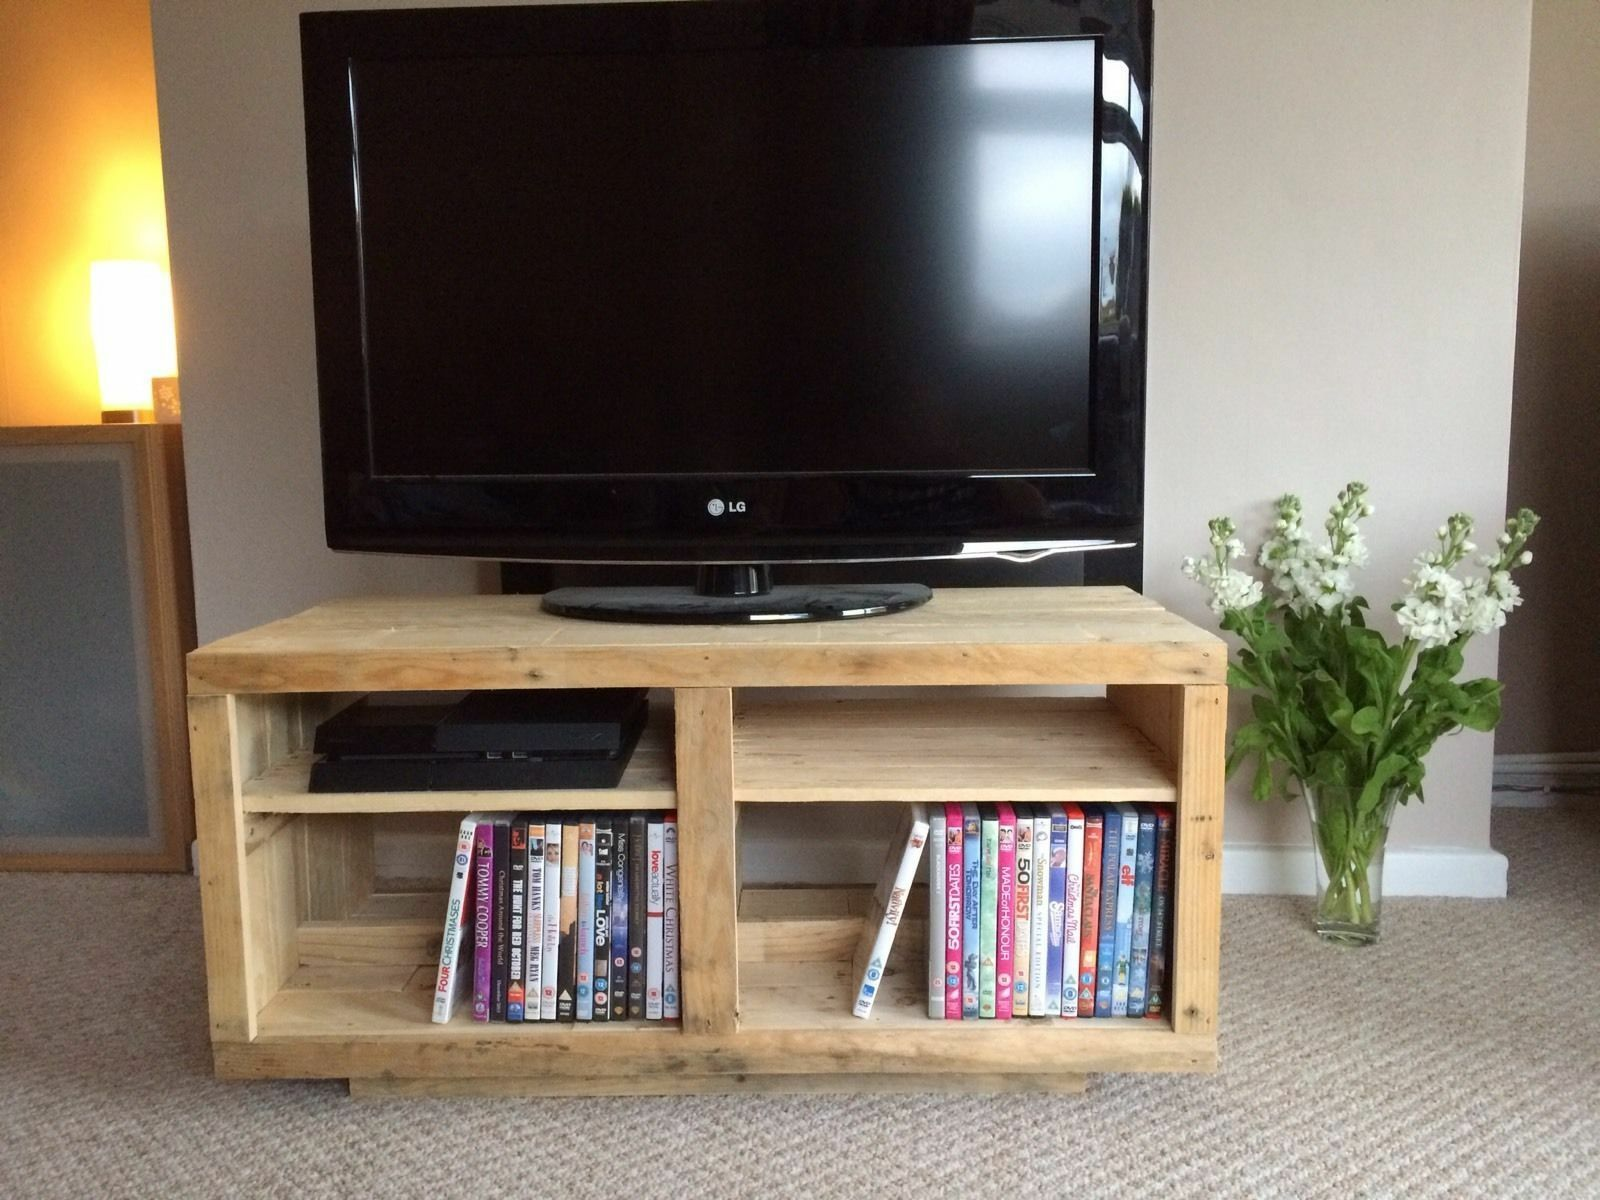 How to build a tv stand out of wood ebay for How to build a stand